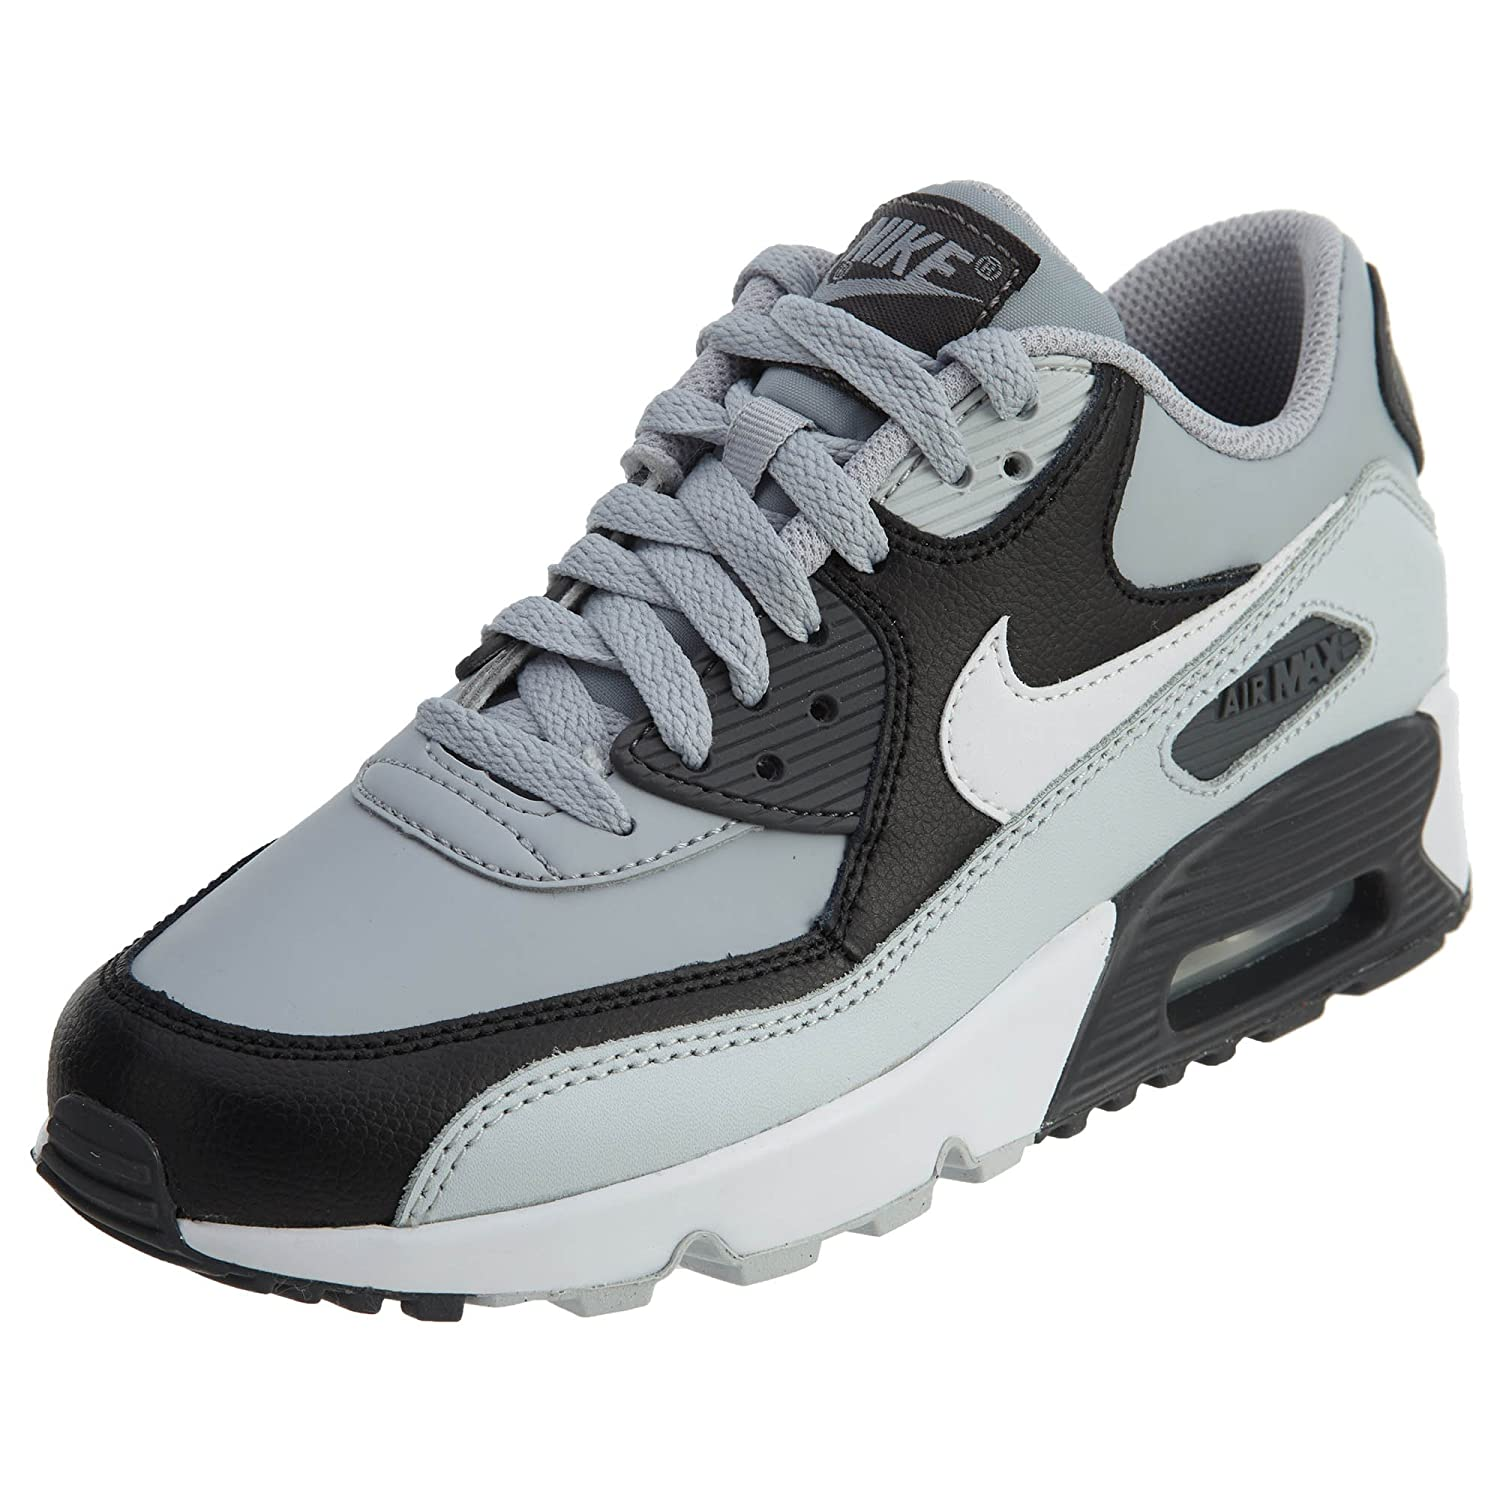 promo code acd7f d1e51 NIKE Boy's Air Max 90 Leather (GS) Shoe, Wolf Grey/White-Pure  Platinum-Black 6.5Y